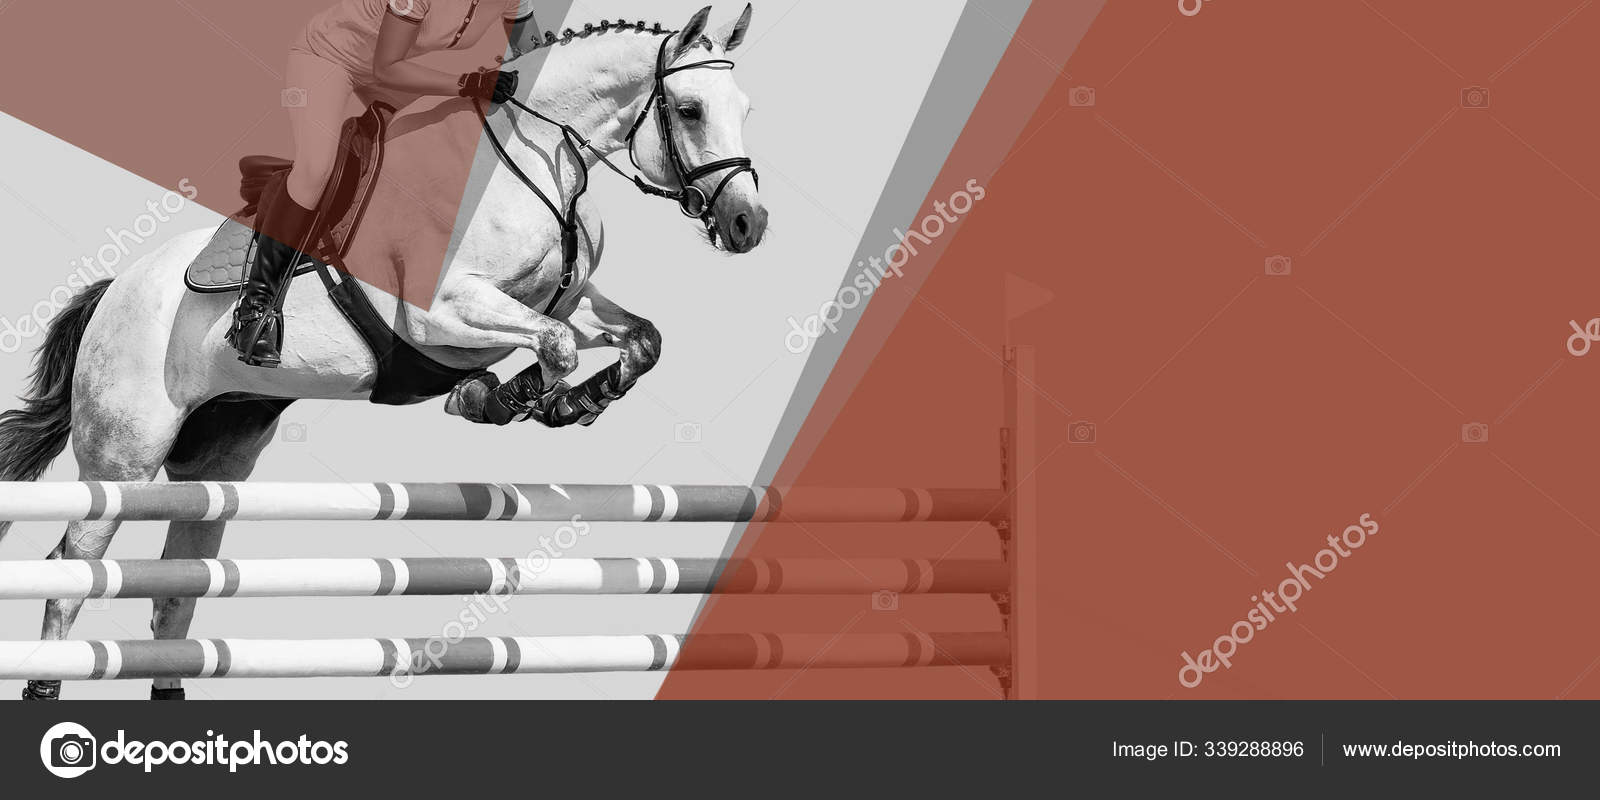 Horse Rider Black White Banner Header Billboard Duo Tone Beautiful Stock Photo C Martanovak 339288896